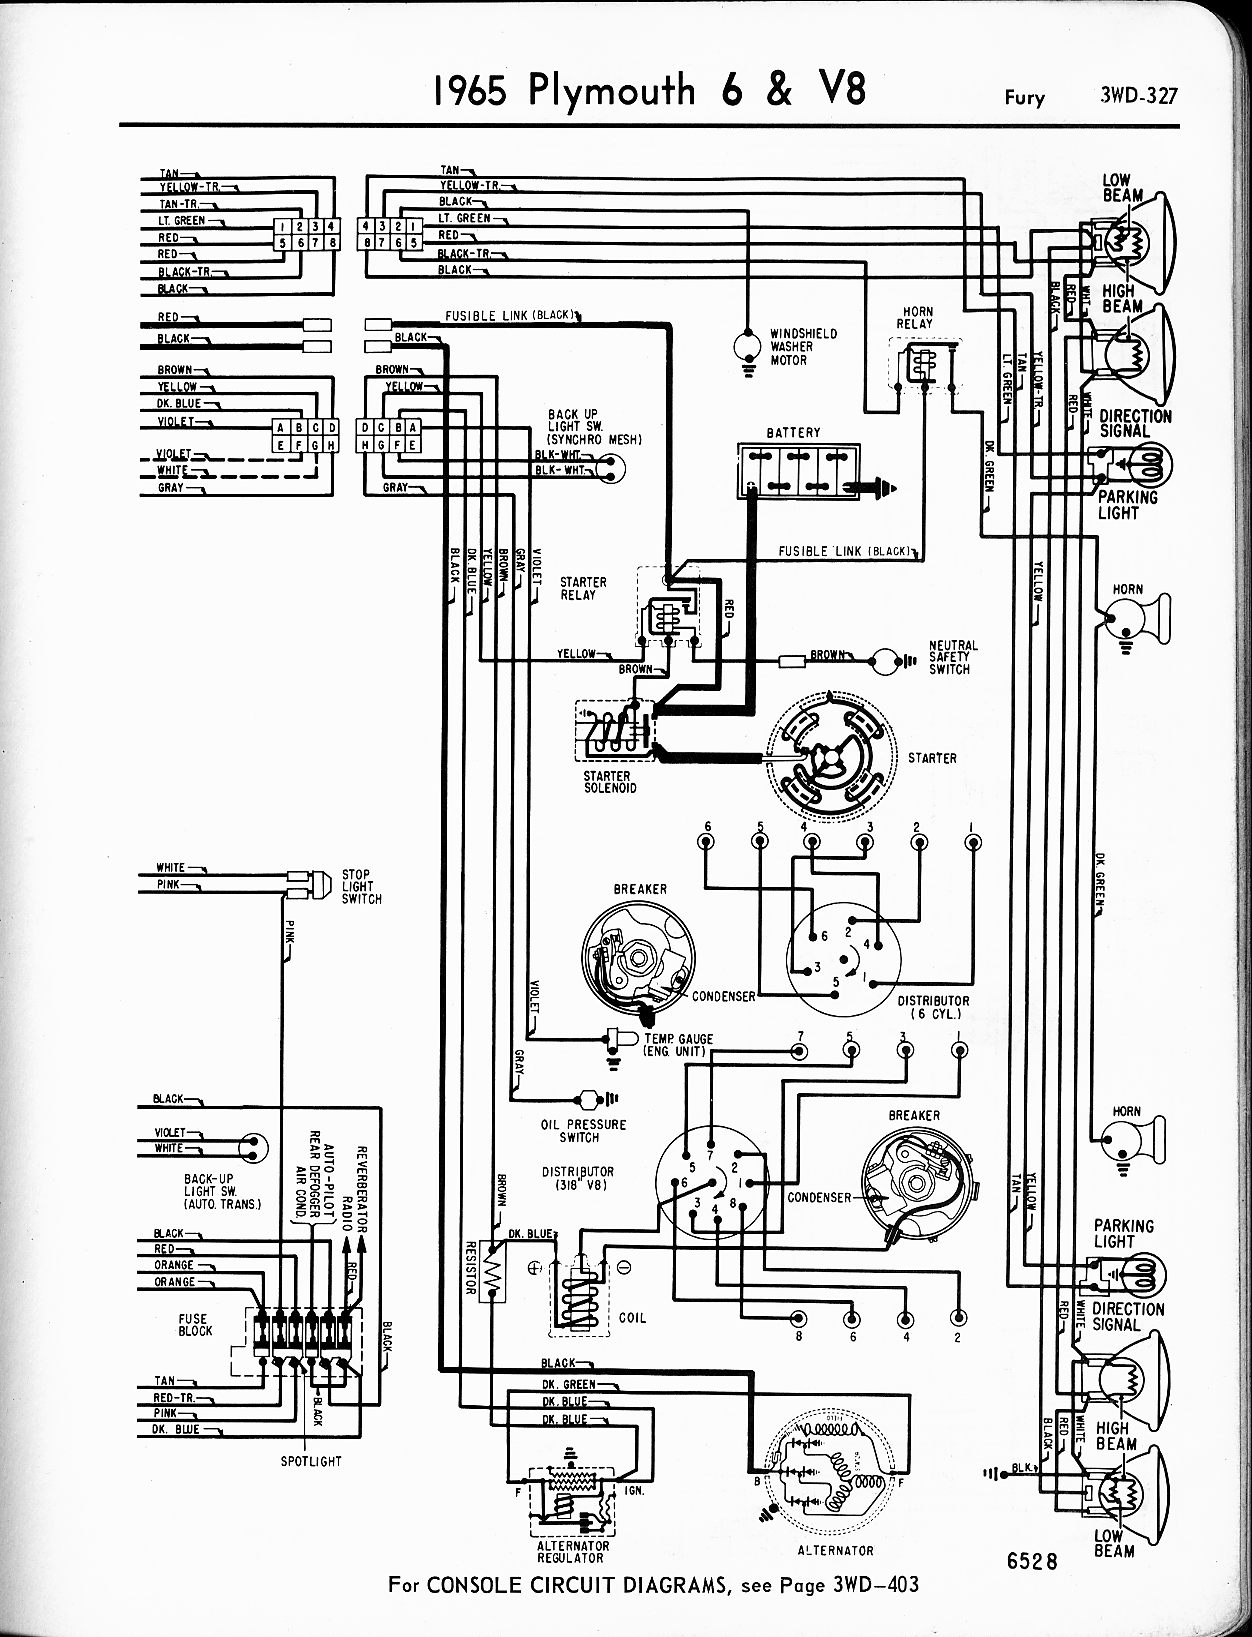 53 Buick Wiring Diagram Free Picture Schematic Wiring Diagram Diode Design Diode Design Bellesserepoint It